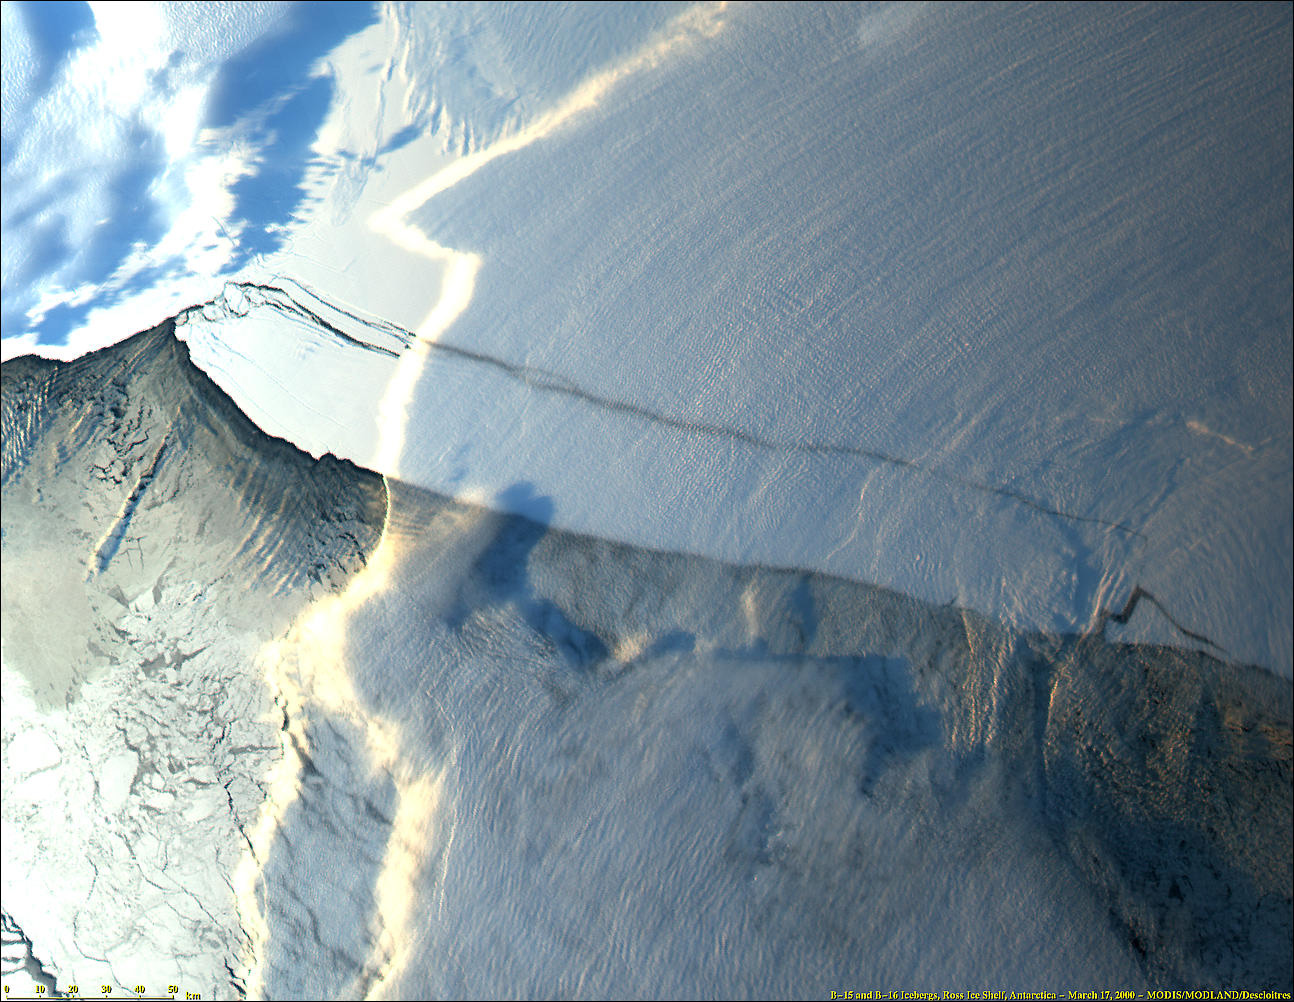 Iceberg B-15, Ross Ice Shelf, Antarctica - related image preview